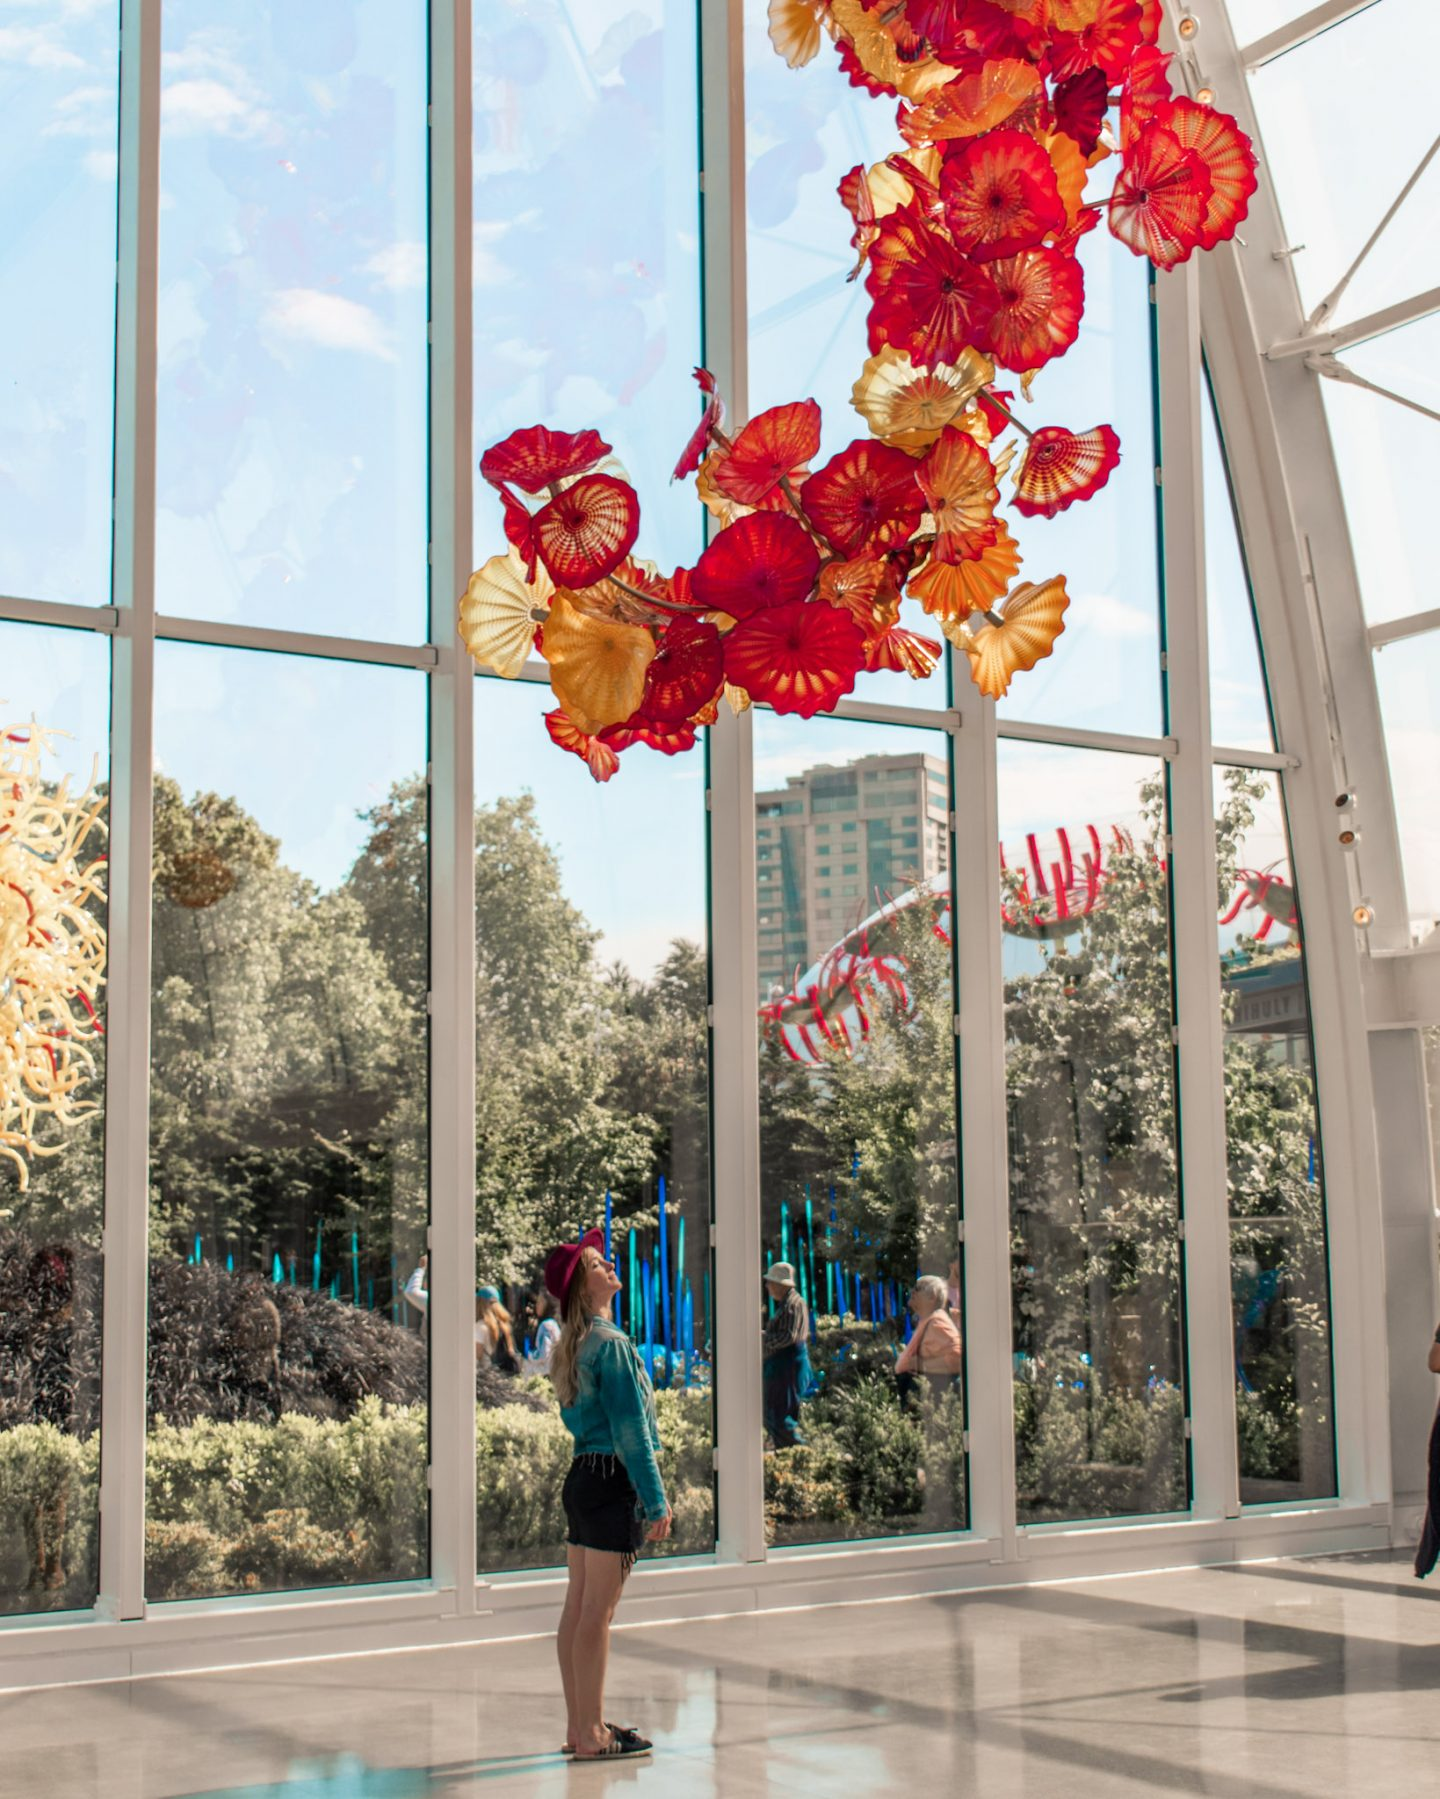 Instagram worthy places in chihuly glass gardens